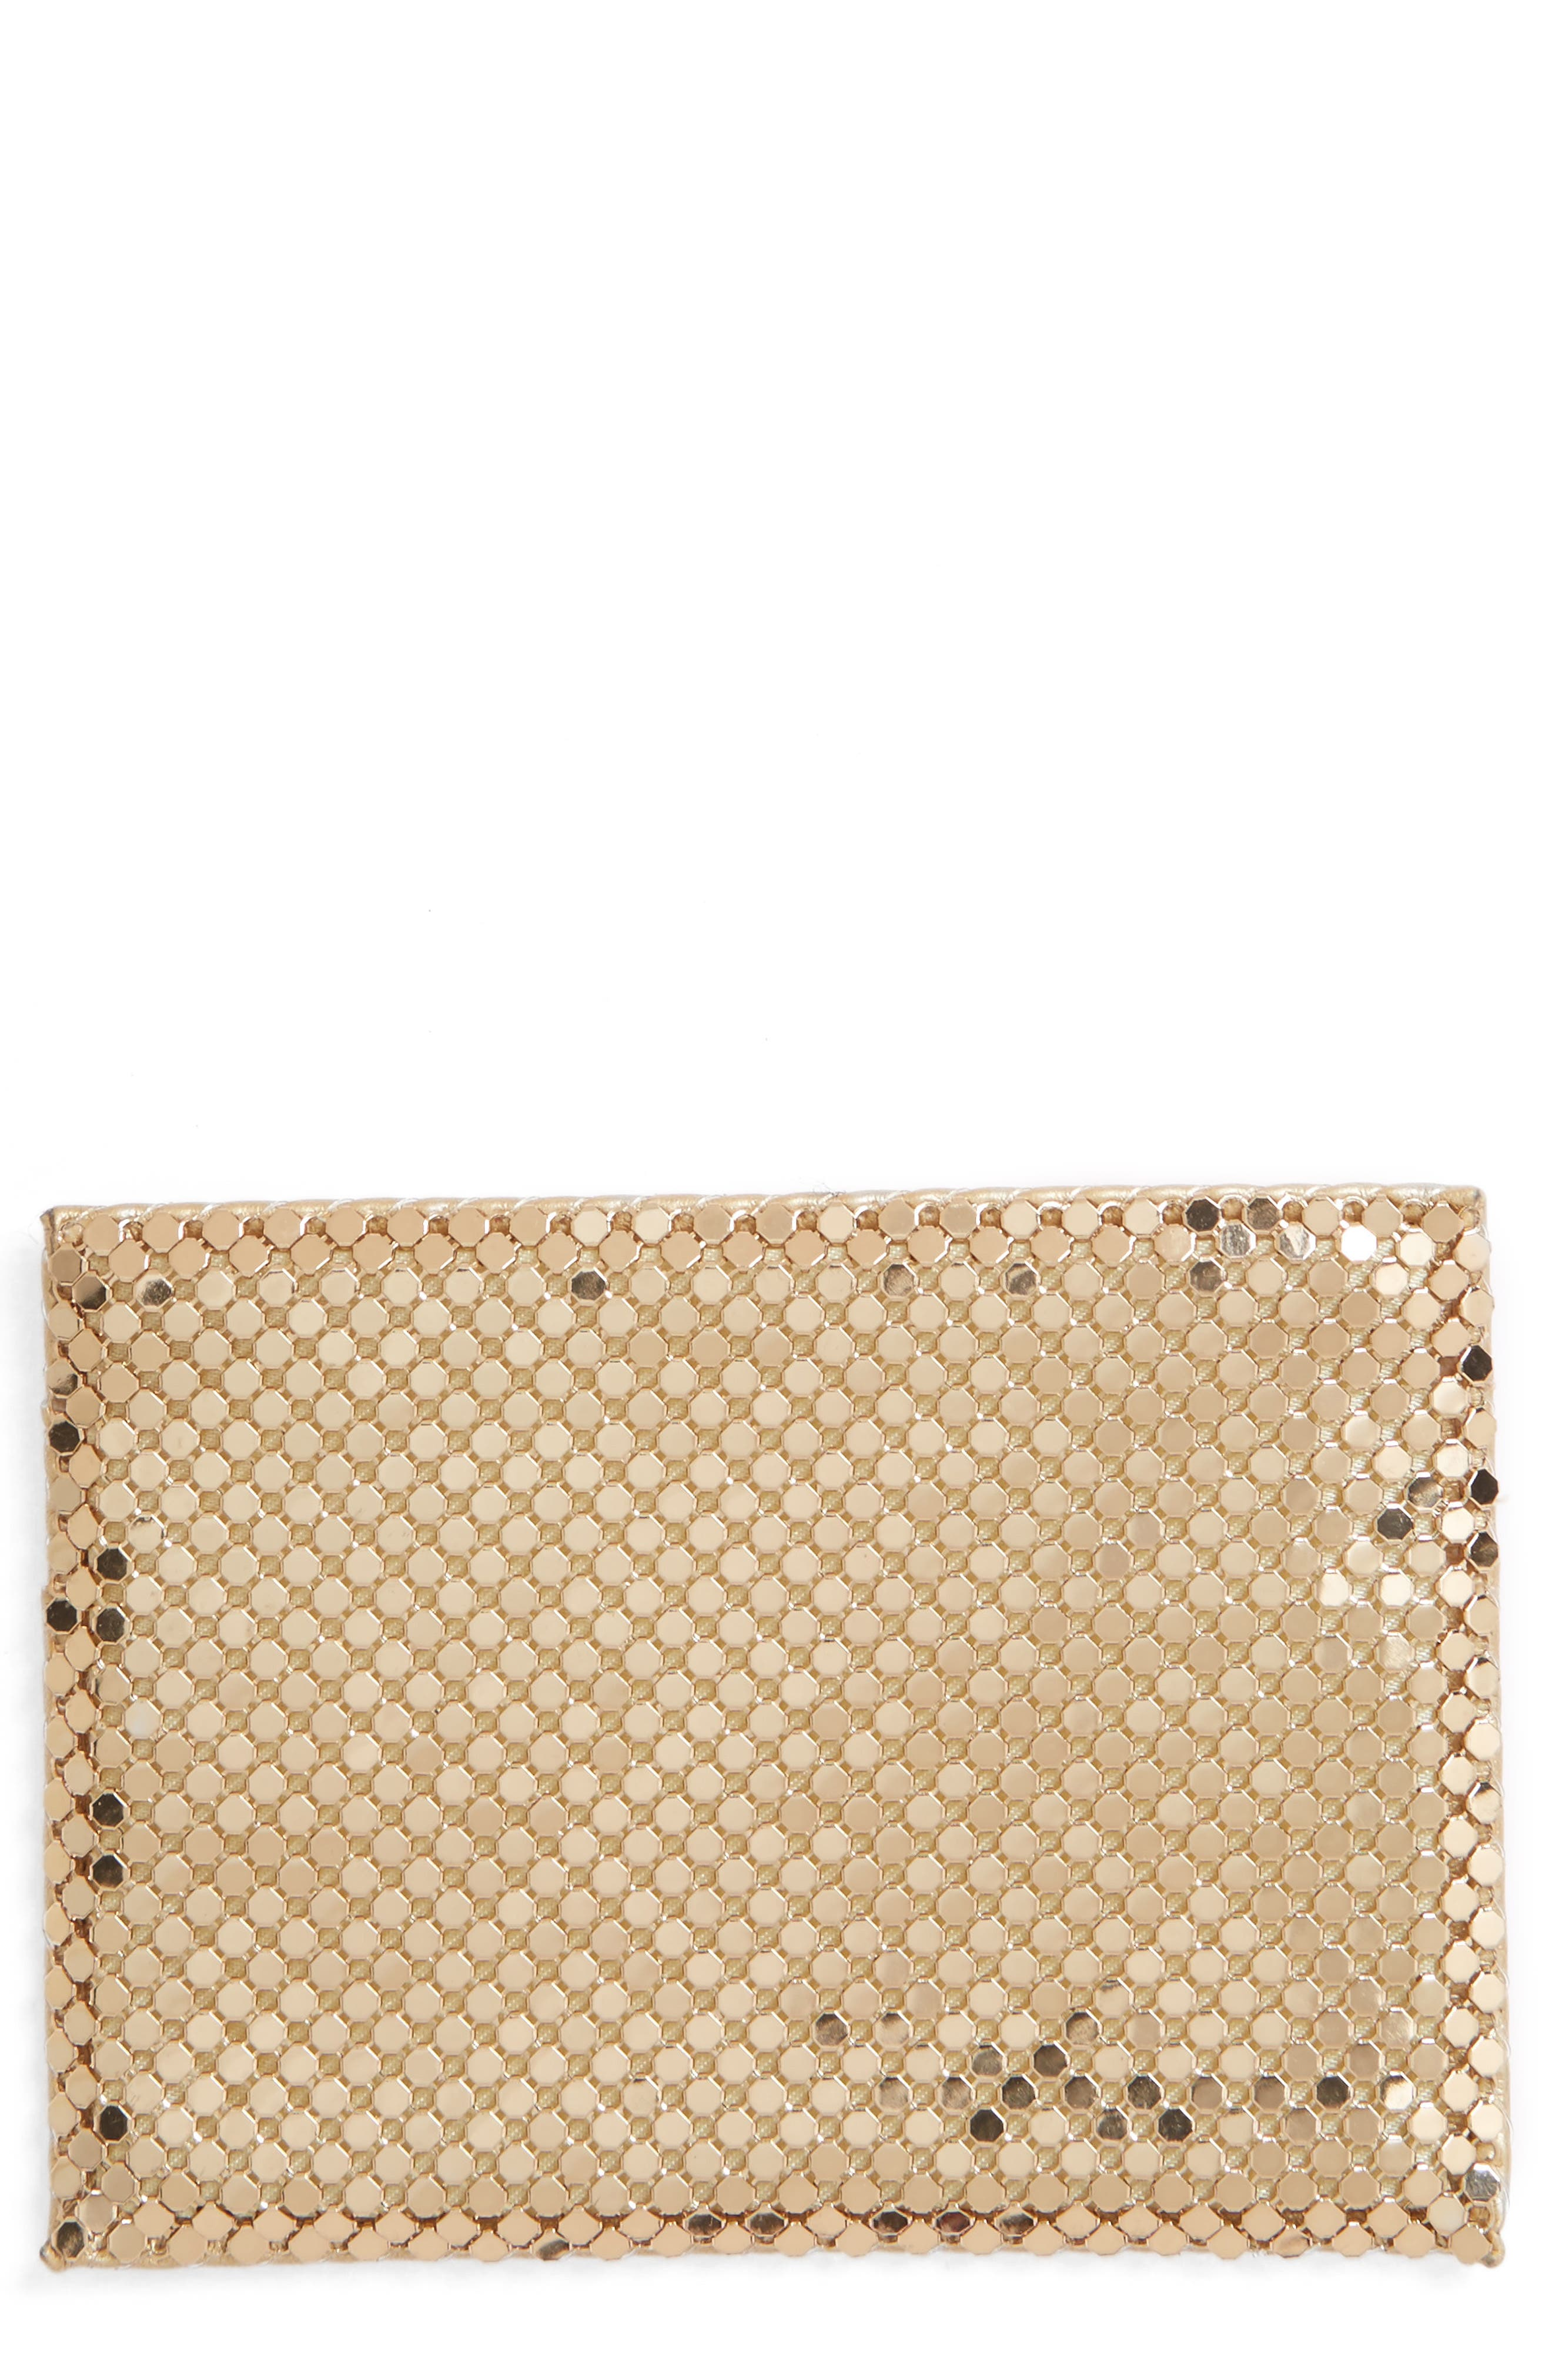 Alternate Image 1 Selected - Whiting & Davis Faux Leather & Mesh Card Case